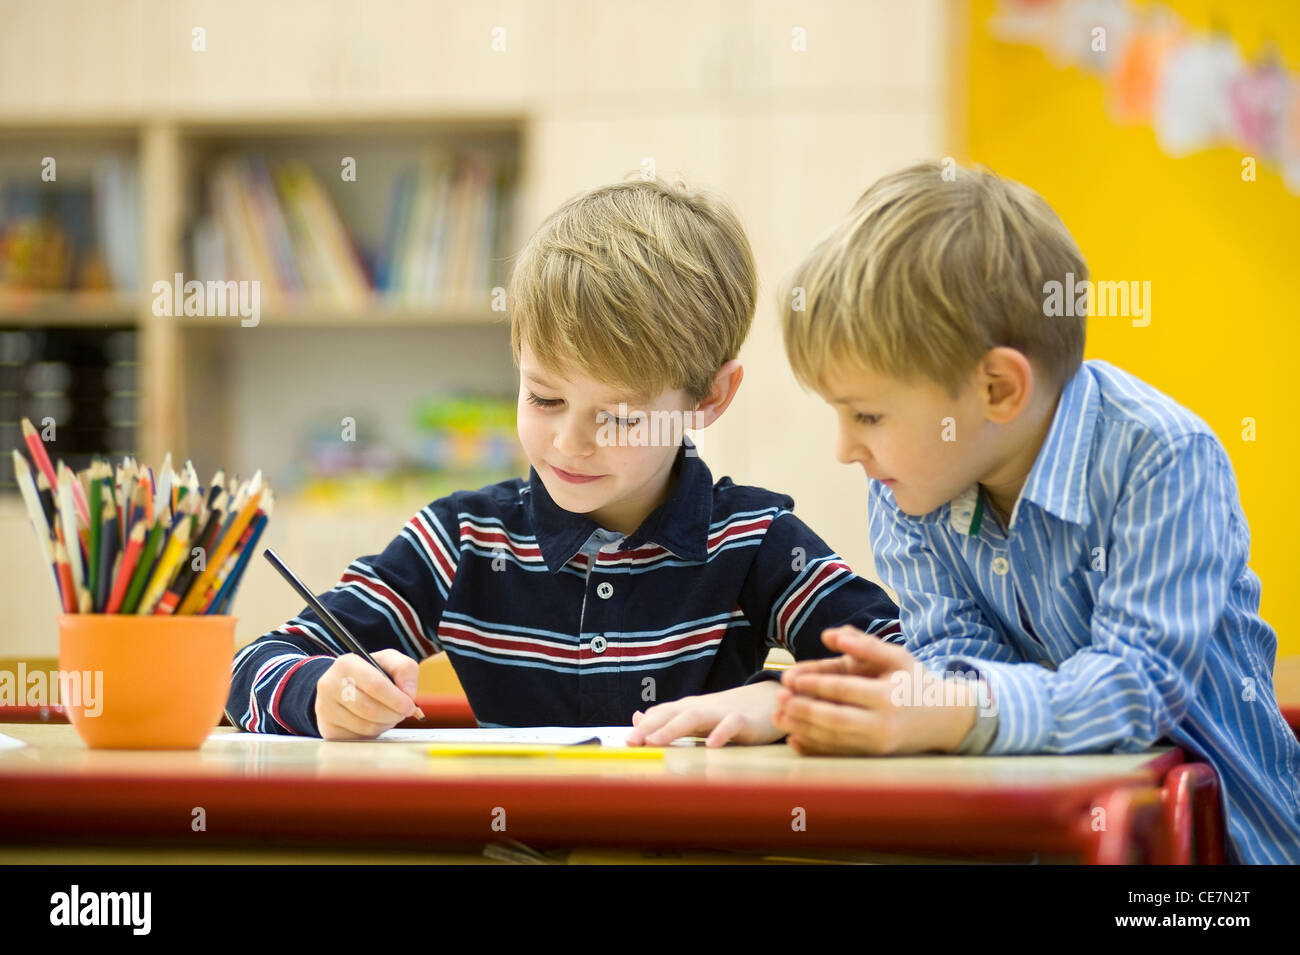 Brothers at primary school - Stock Image